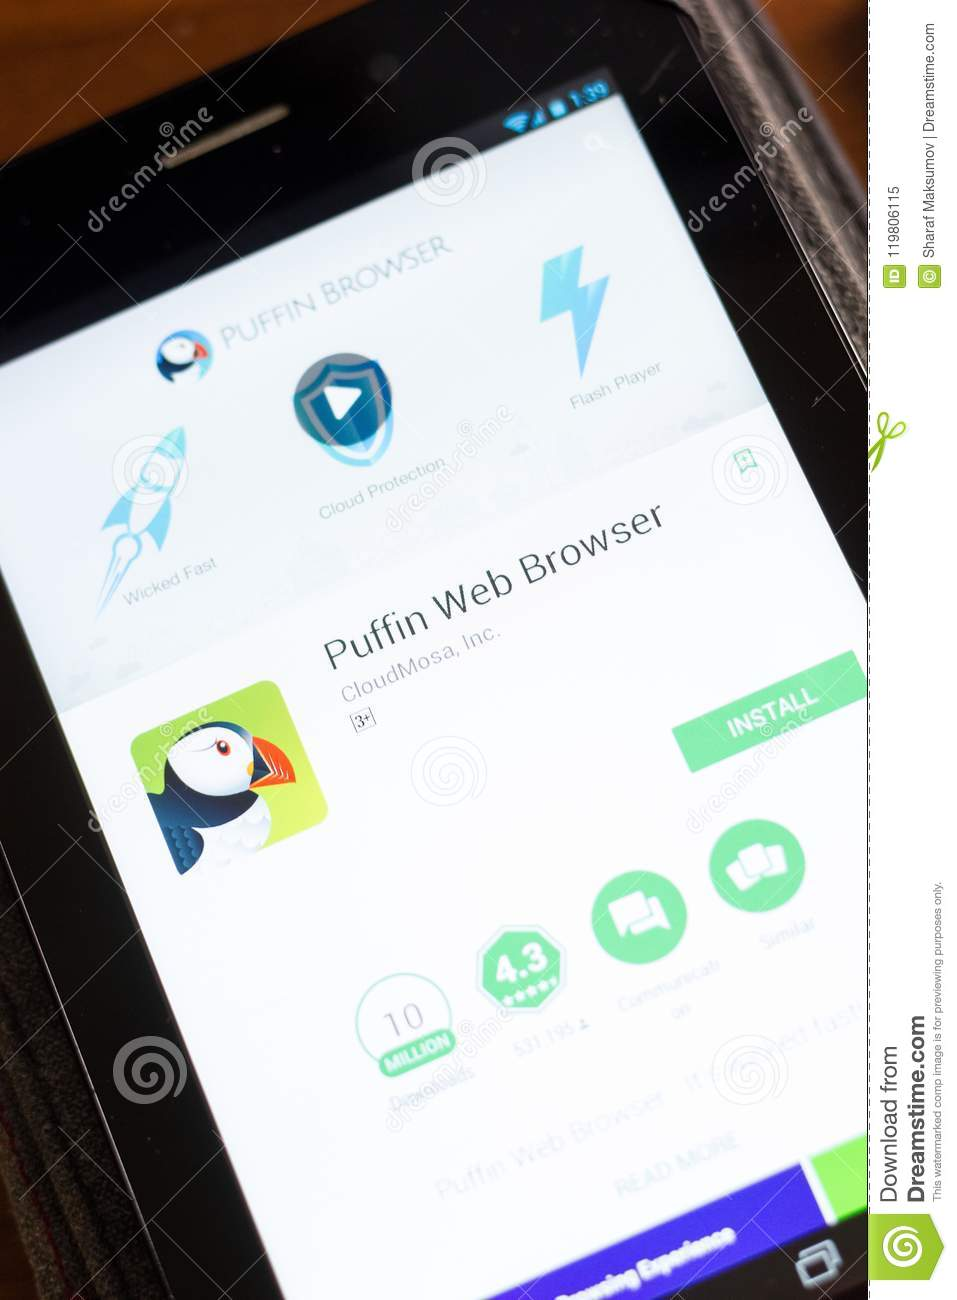 Ryazan, Russia - June 24, 2018: Puffin Web Browser Mobile